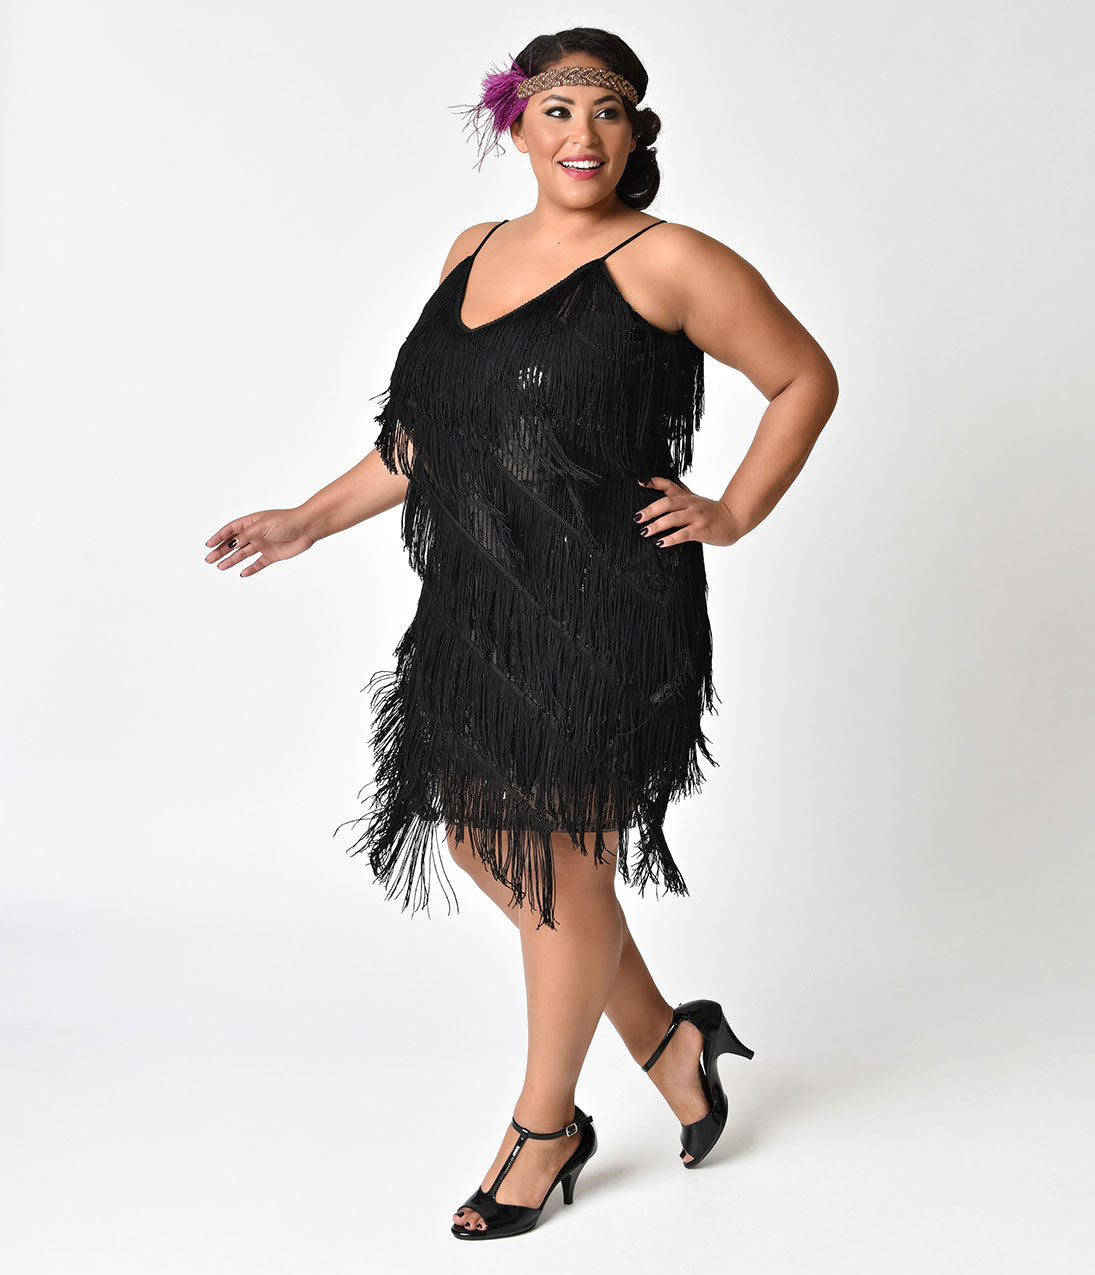 Flapper Costumes, Flapper Girl Costume Unique Vintage Plus Size 1920S Style Black Cecile Tiered Fringe Flapper Dress $35.00 AT vintagedancer.com